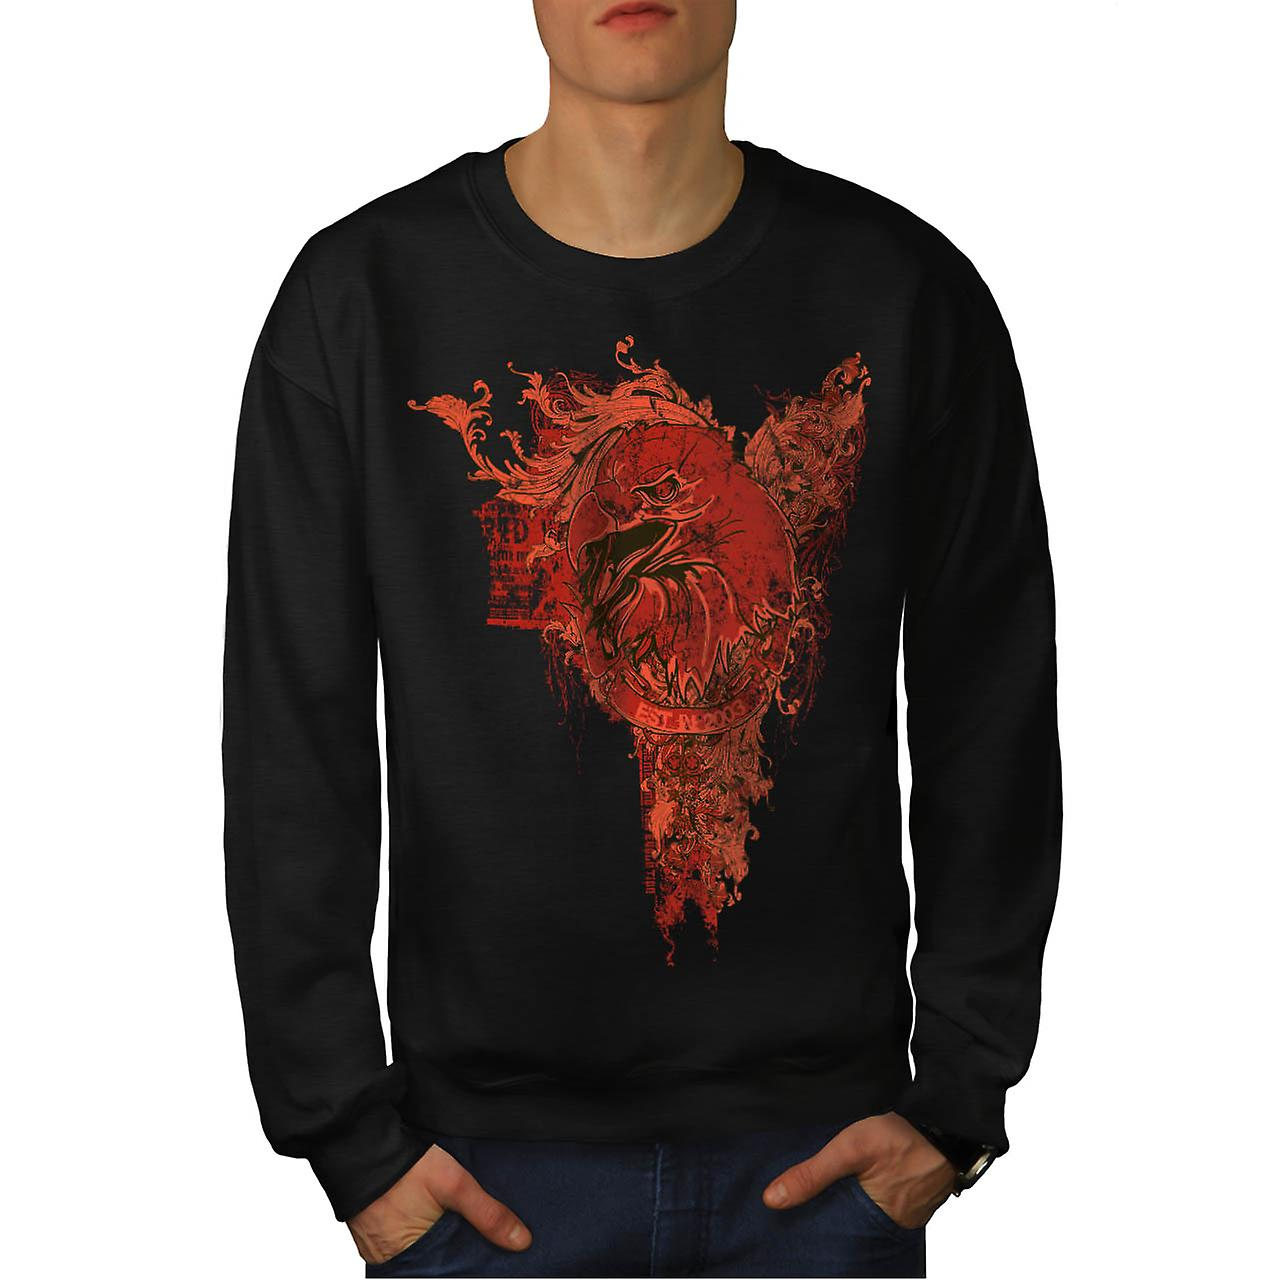 Grim Reaper Death Vintage Men Black Sweatshirt | Wellcoda